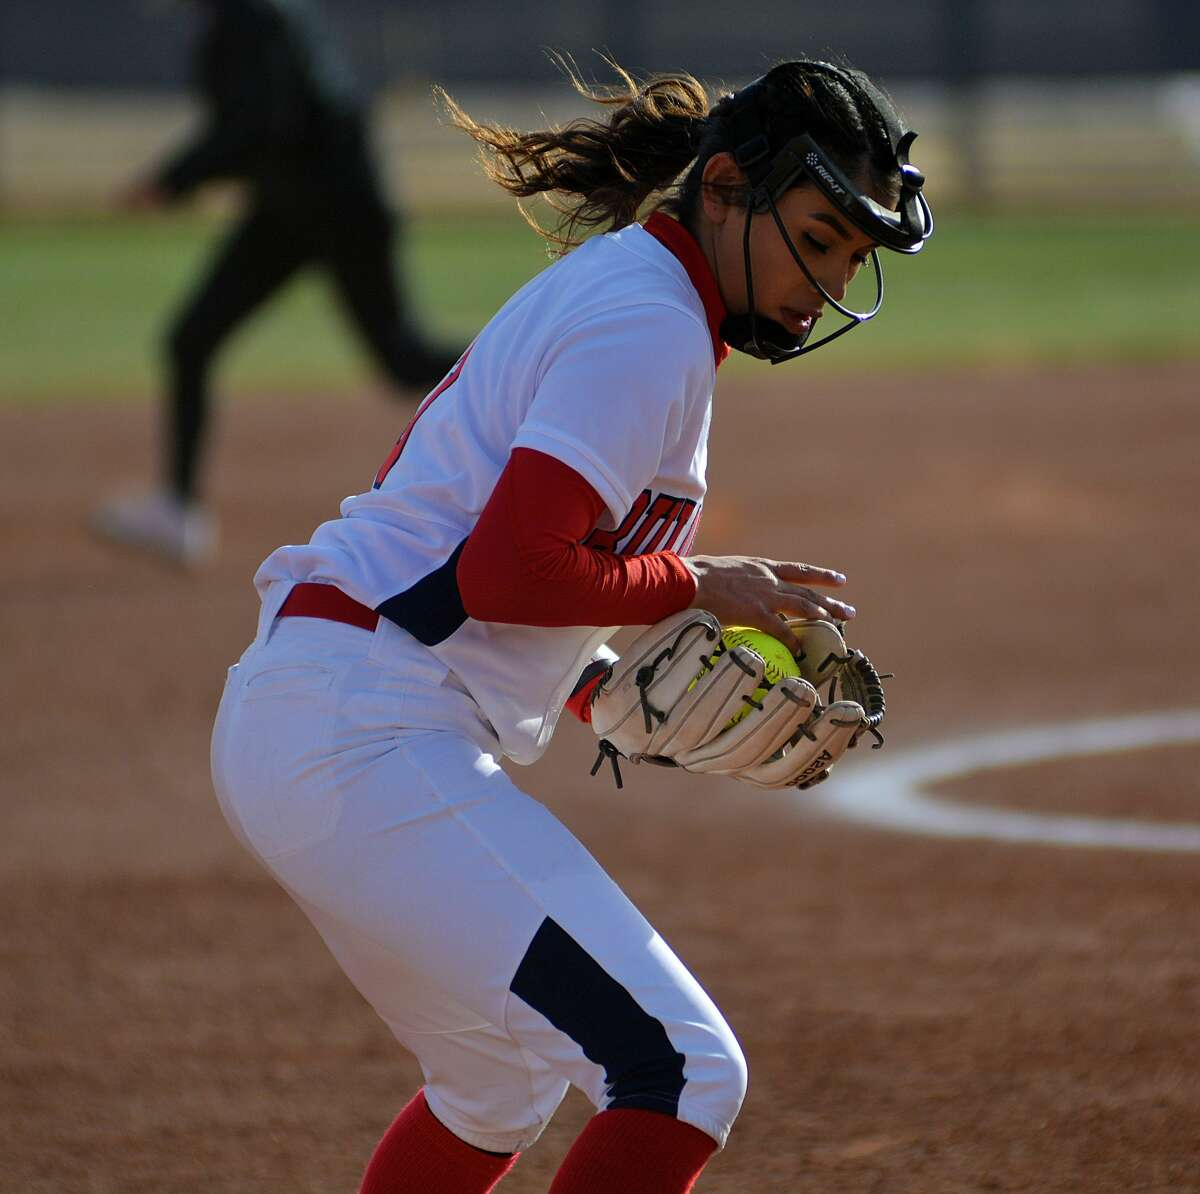 Plainview's Alexis Flores scoops up a grounder and steps on third base for the out during a District 3-5A softball game on Tuesday, Feb. 25, 2020 at Wilder Field.